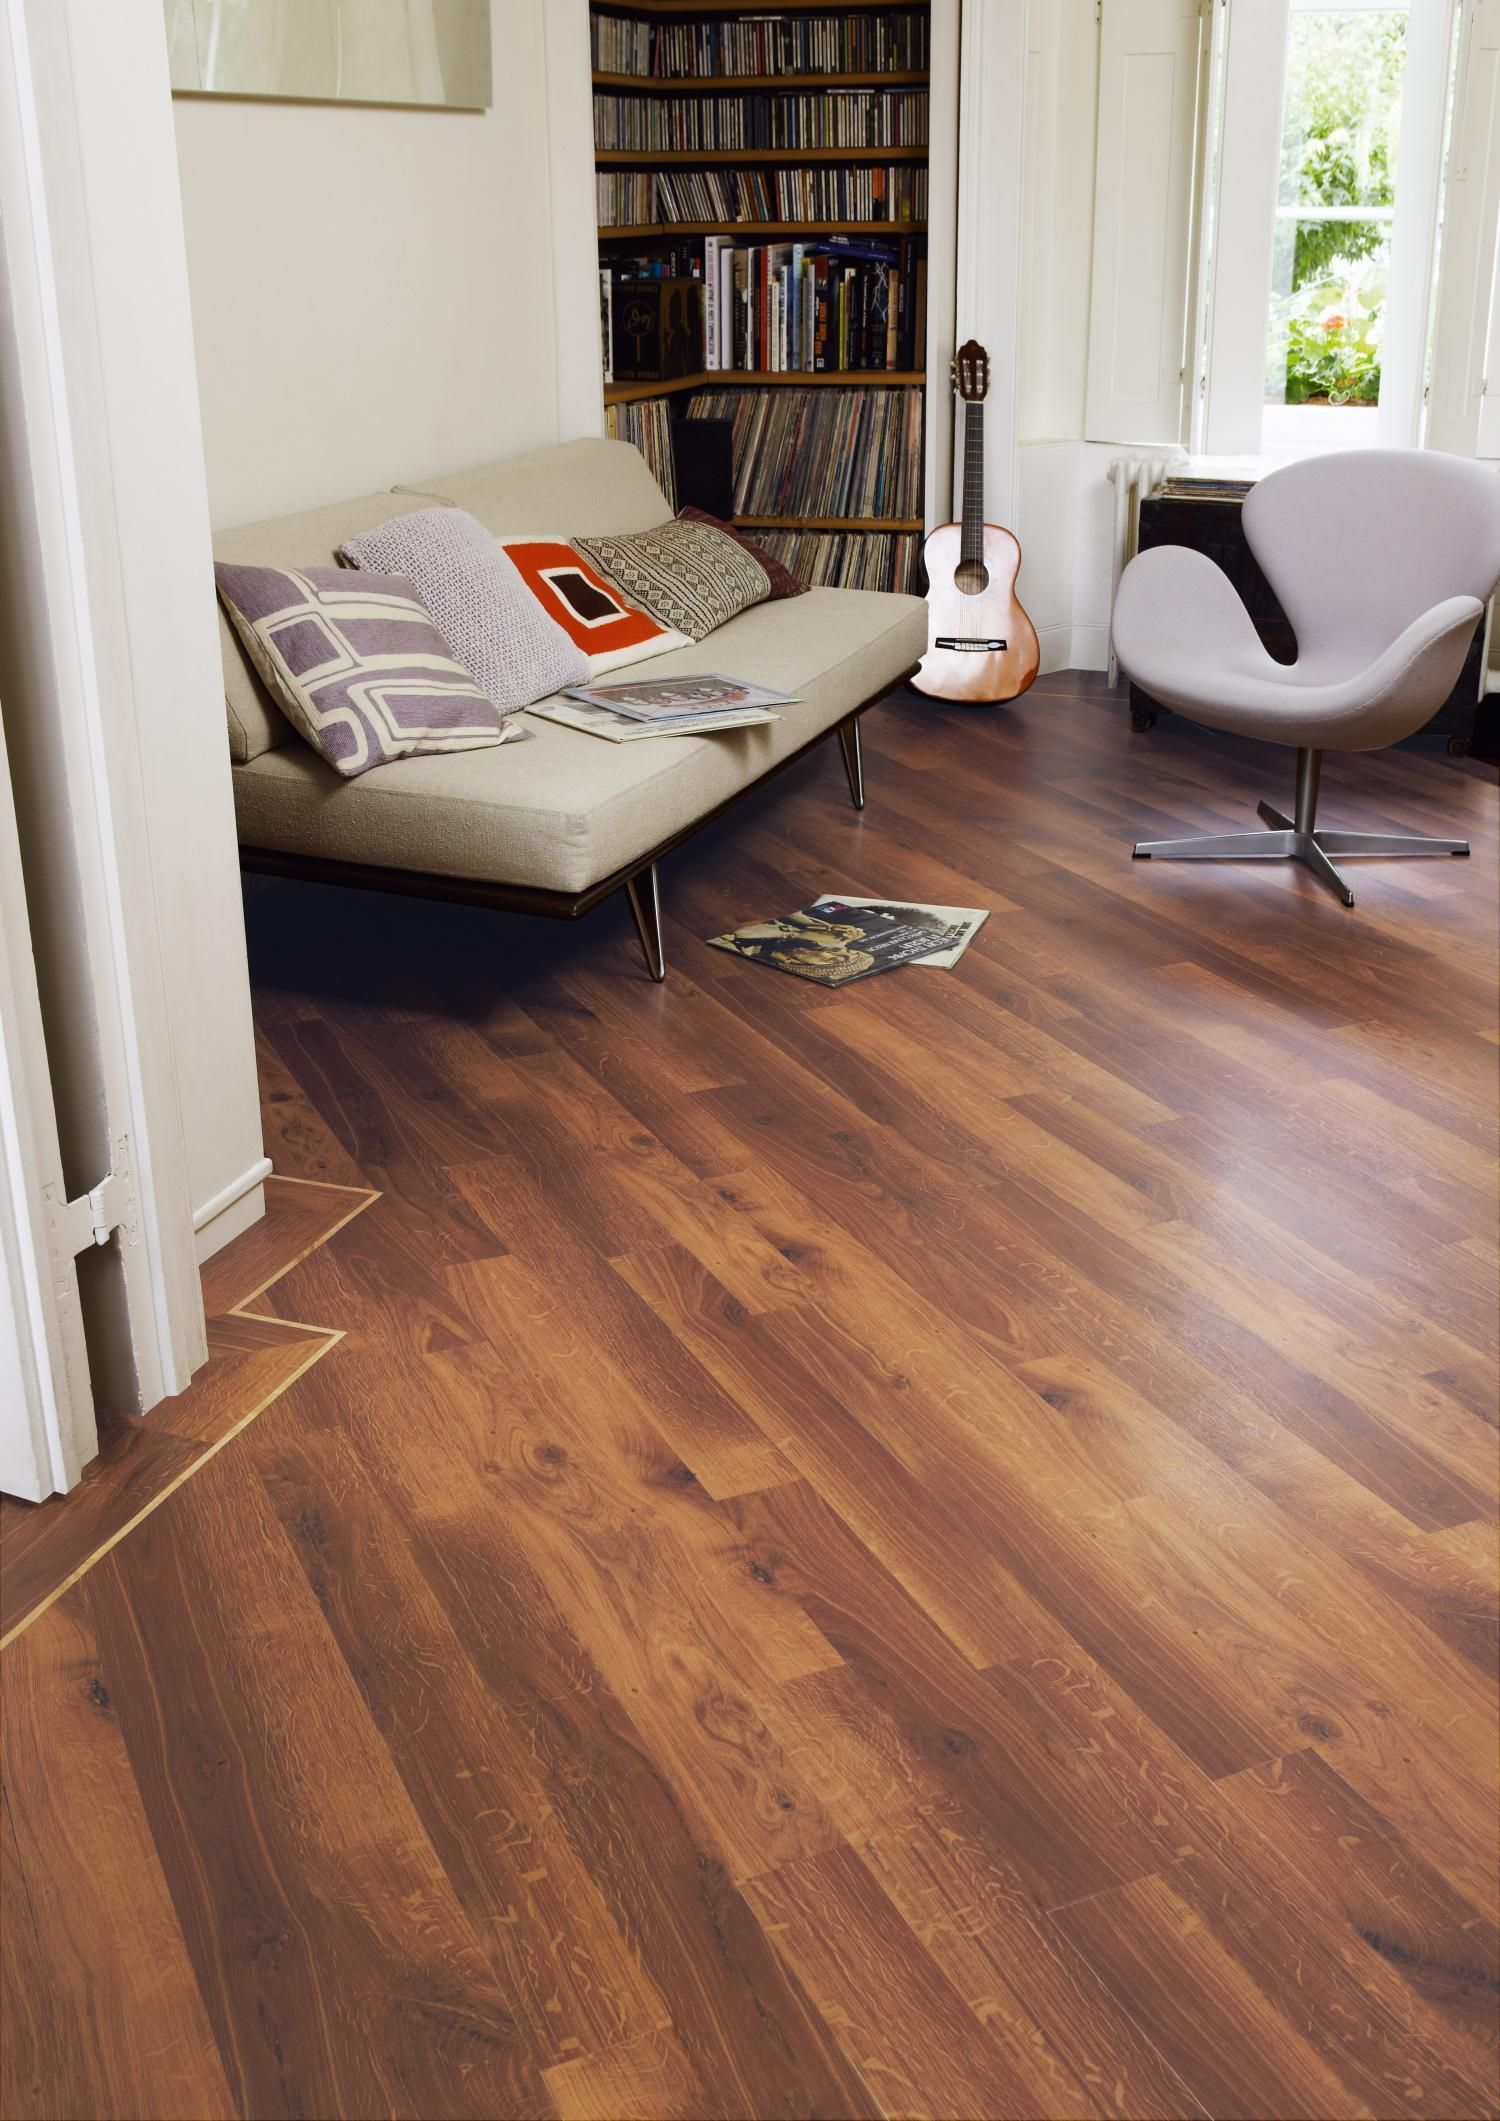 karndean vinyl plank flooring prices smoked oak | Karndean Knight Tile Edwardian Oak Vinyl Flooring